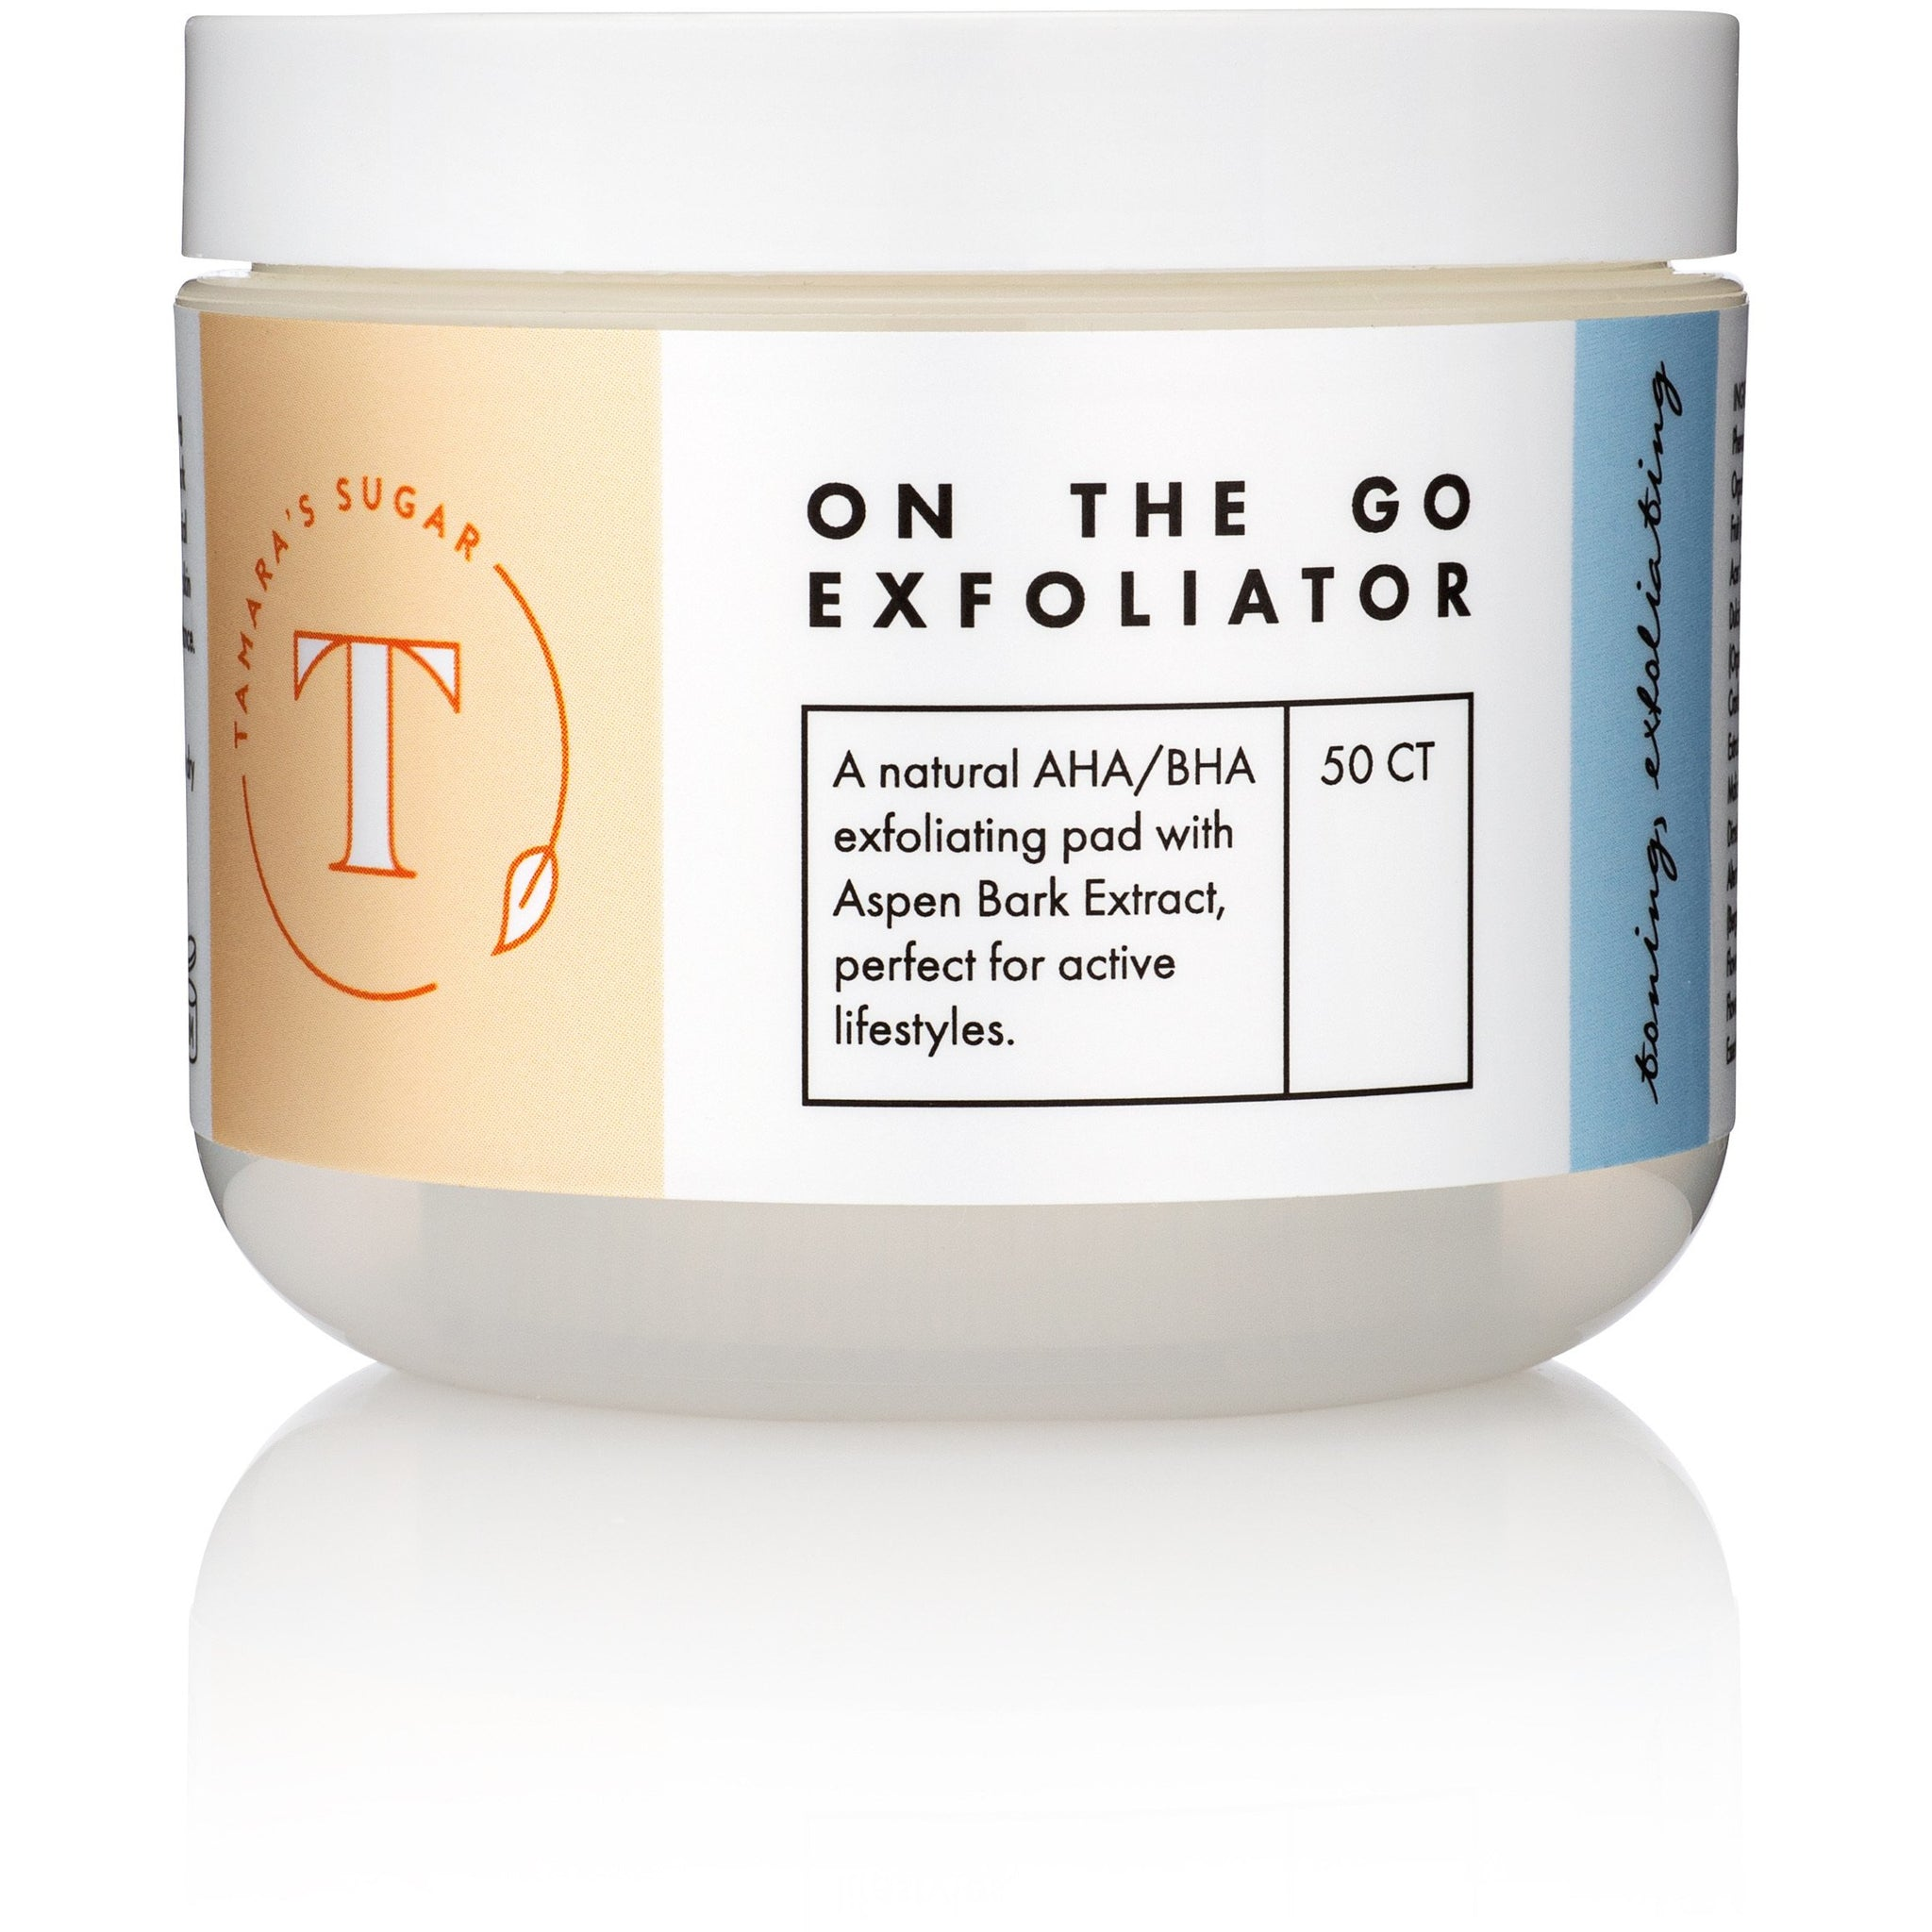 On the Go Exfoliator